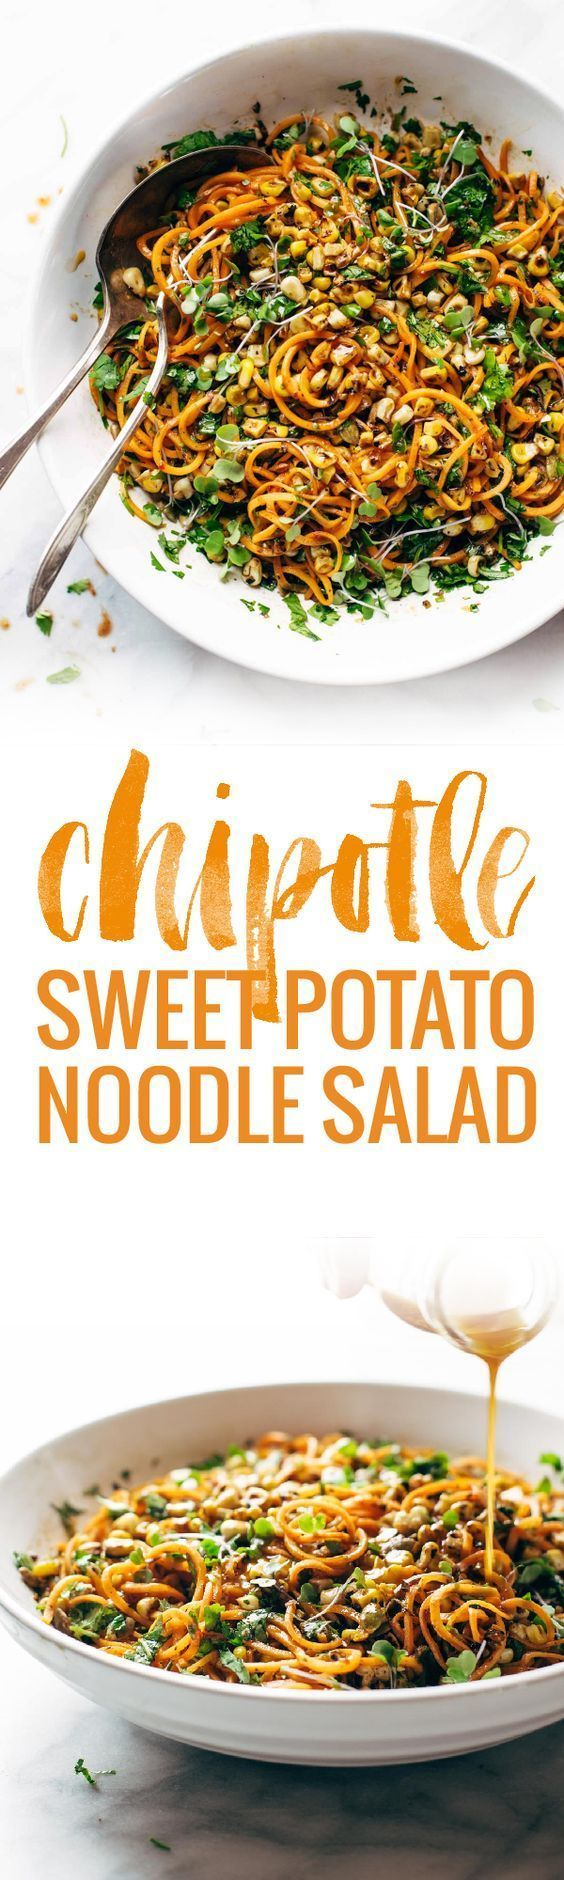 Chipotle Sweet Potato Noodle Salad with Roasted Corn - SUPER good real food salad with a short ingredient list! Cilantro, sweet potato, roasted corn, pepitas, and a homemade chipotle garlic dressing. vegan / vegetarian.